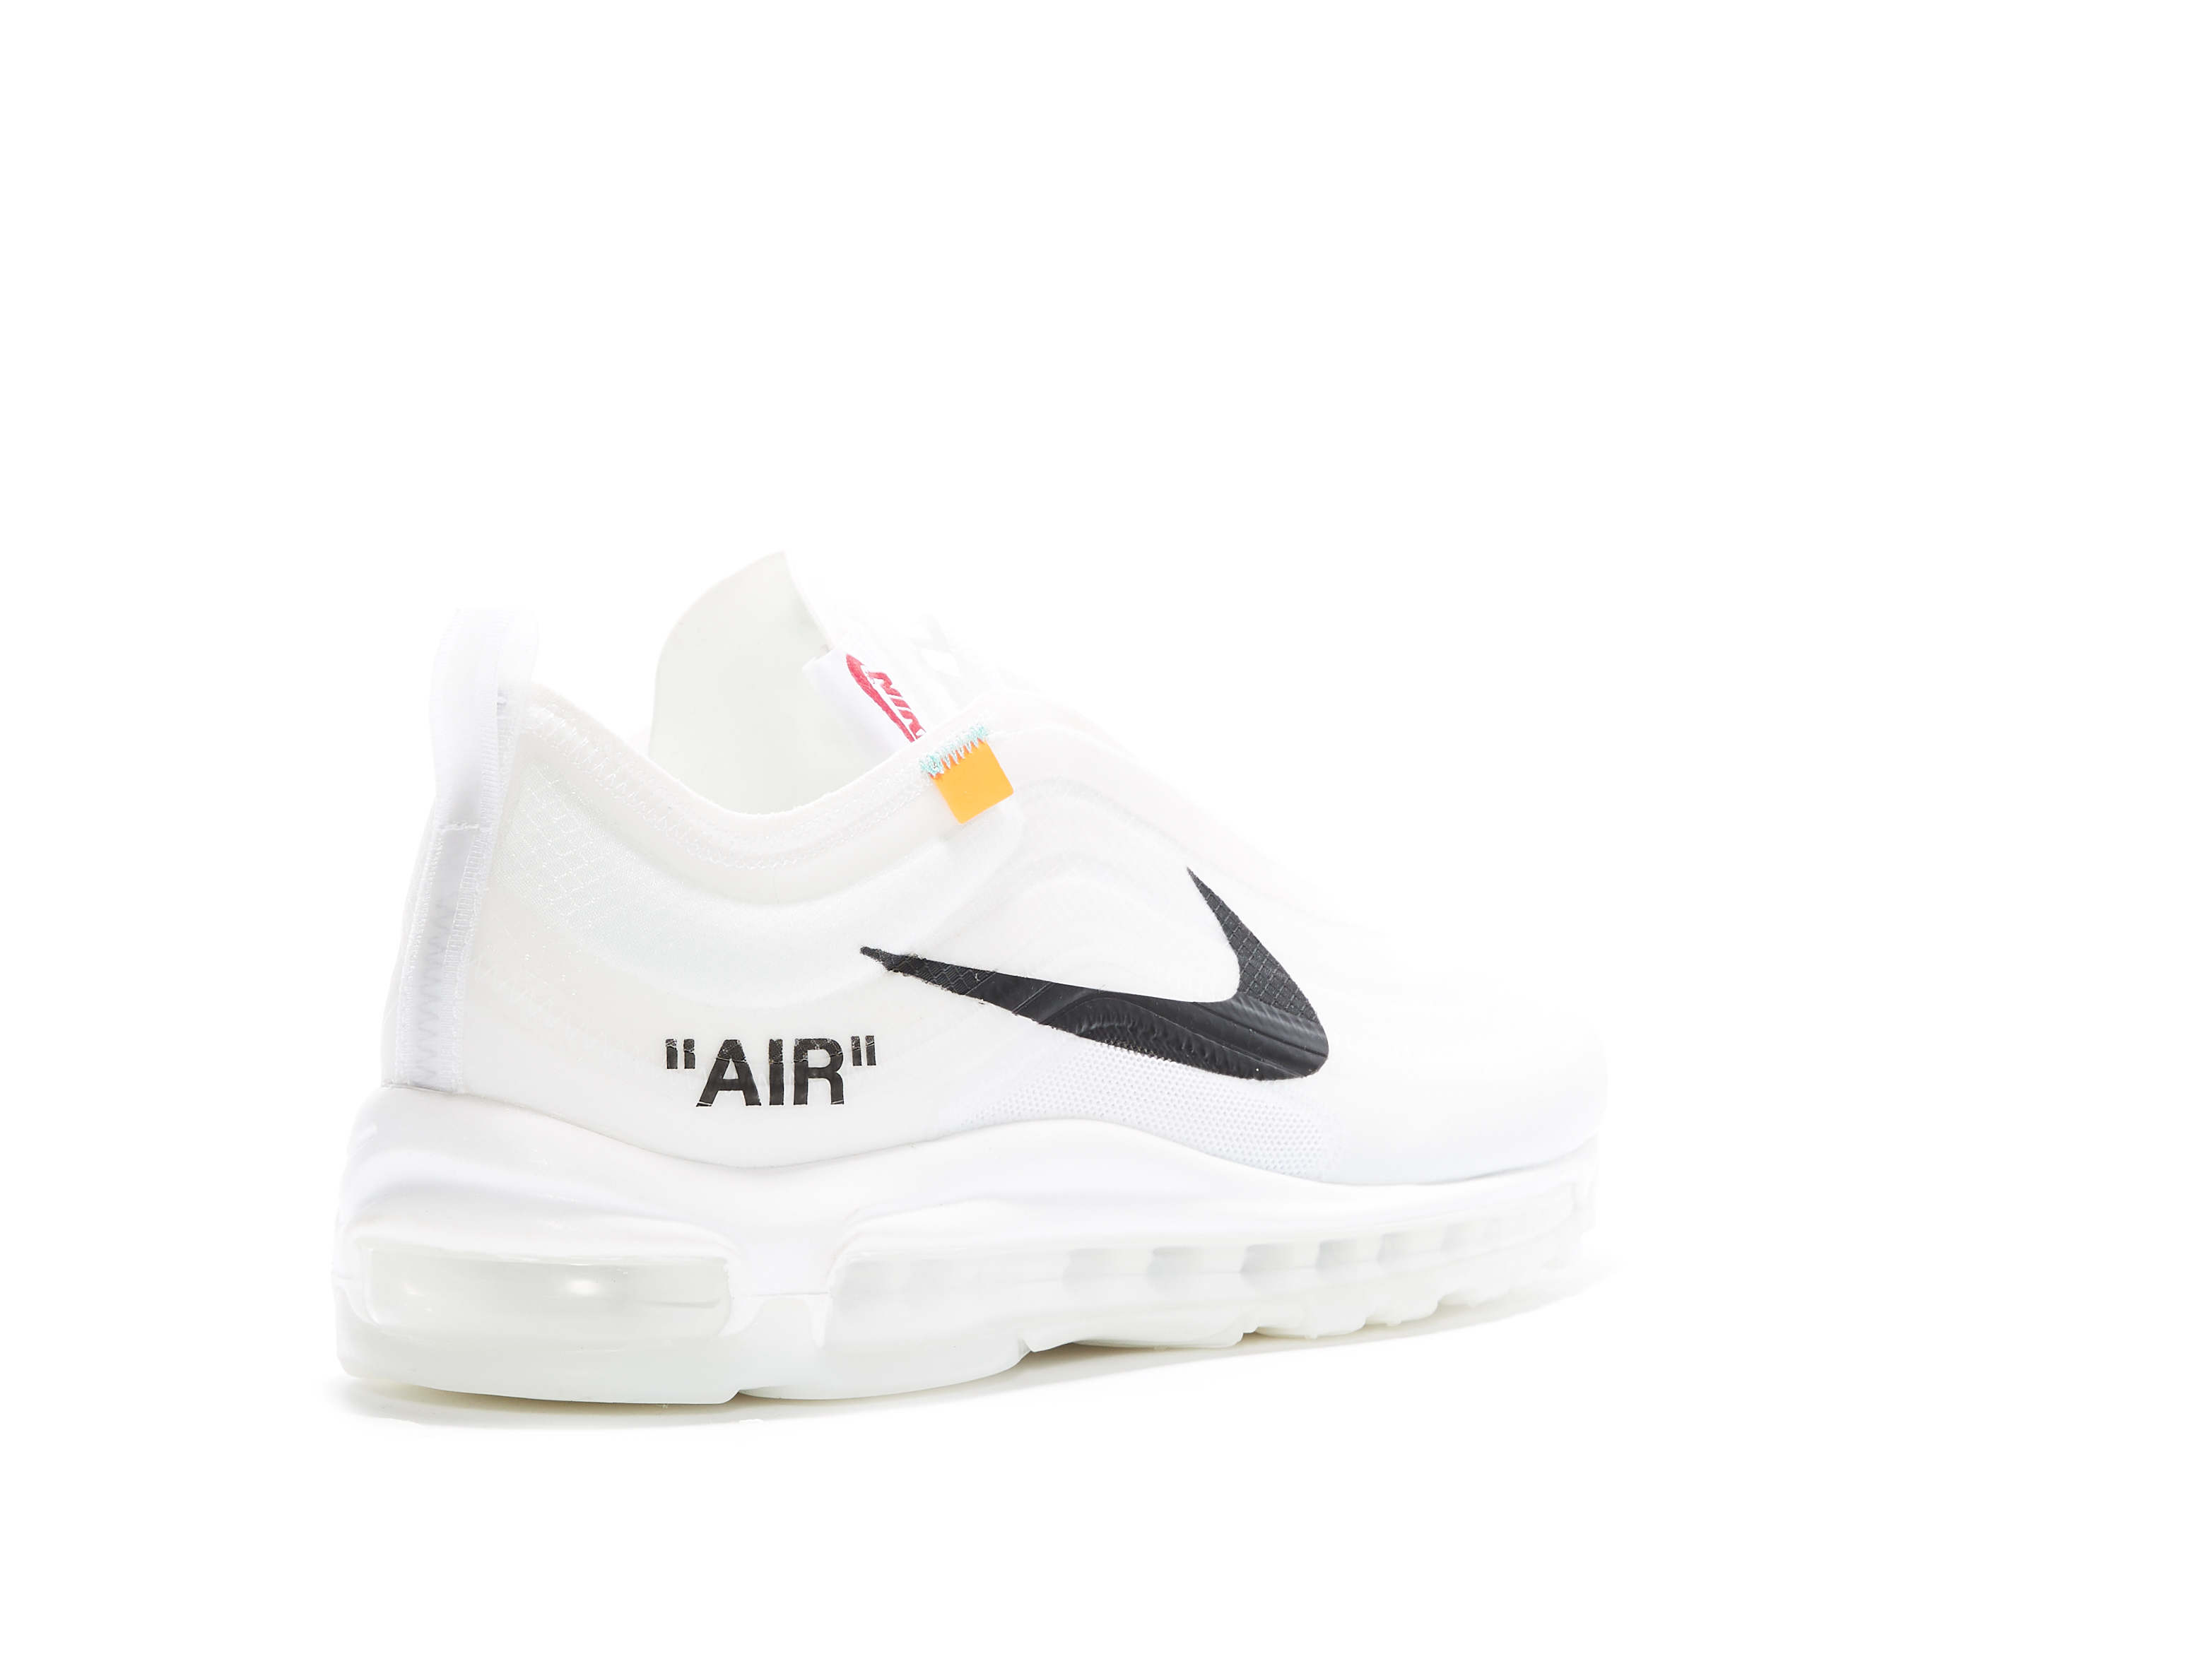 5ee3cc0406 Air Max 97 White x Off-White. 100% AuthenticSold out! Nike / AJ4585-100